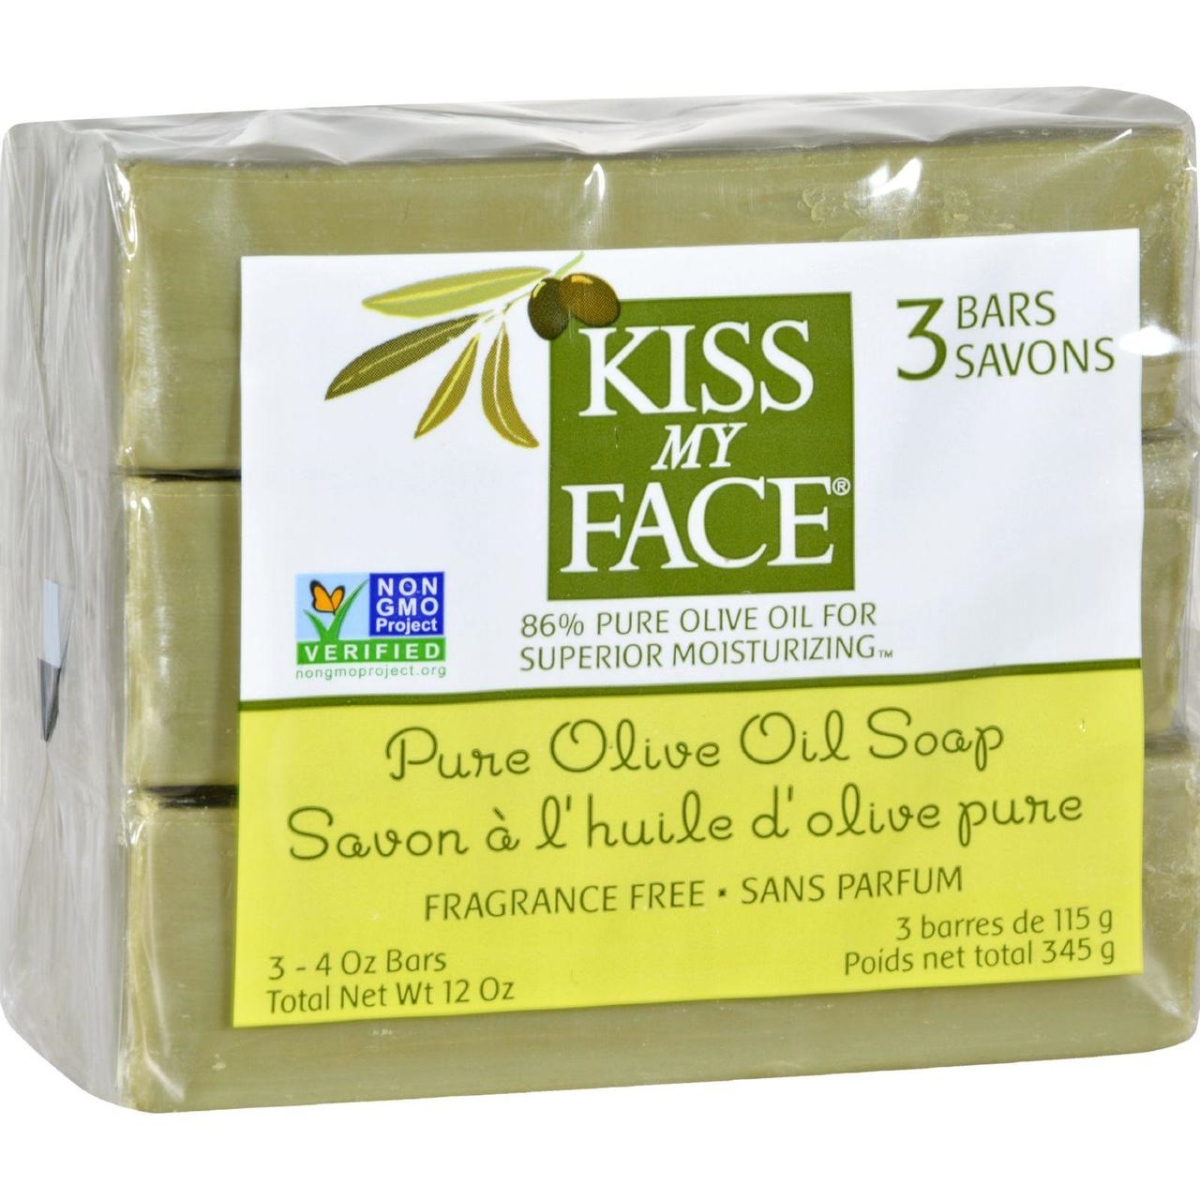 Kiss My Face HG1141837 4 oz Pure Olive Oil Moisturizing Soap Pack of 3